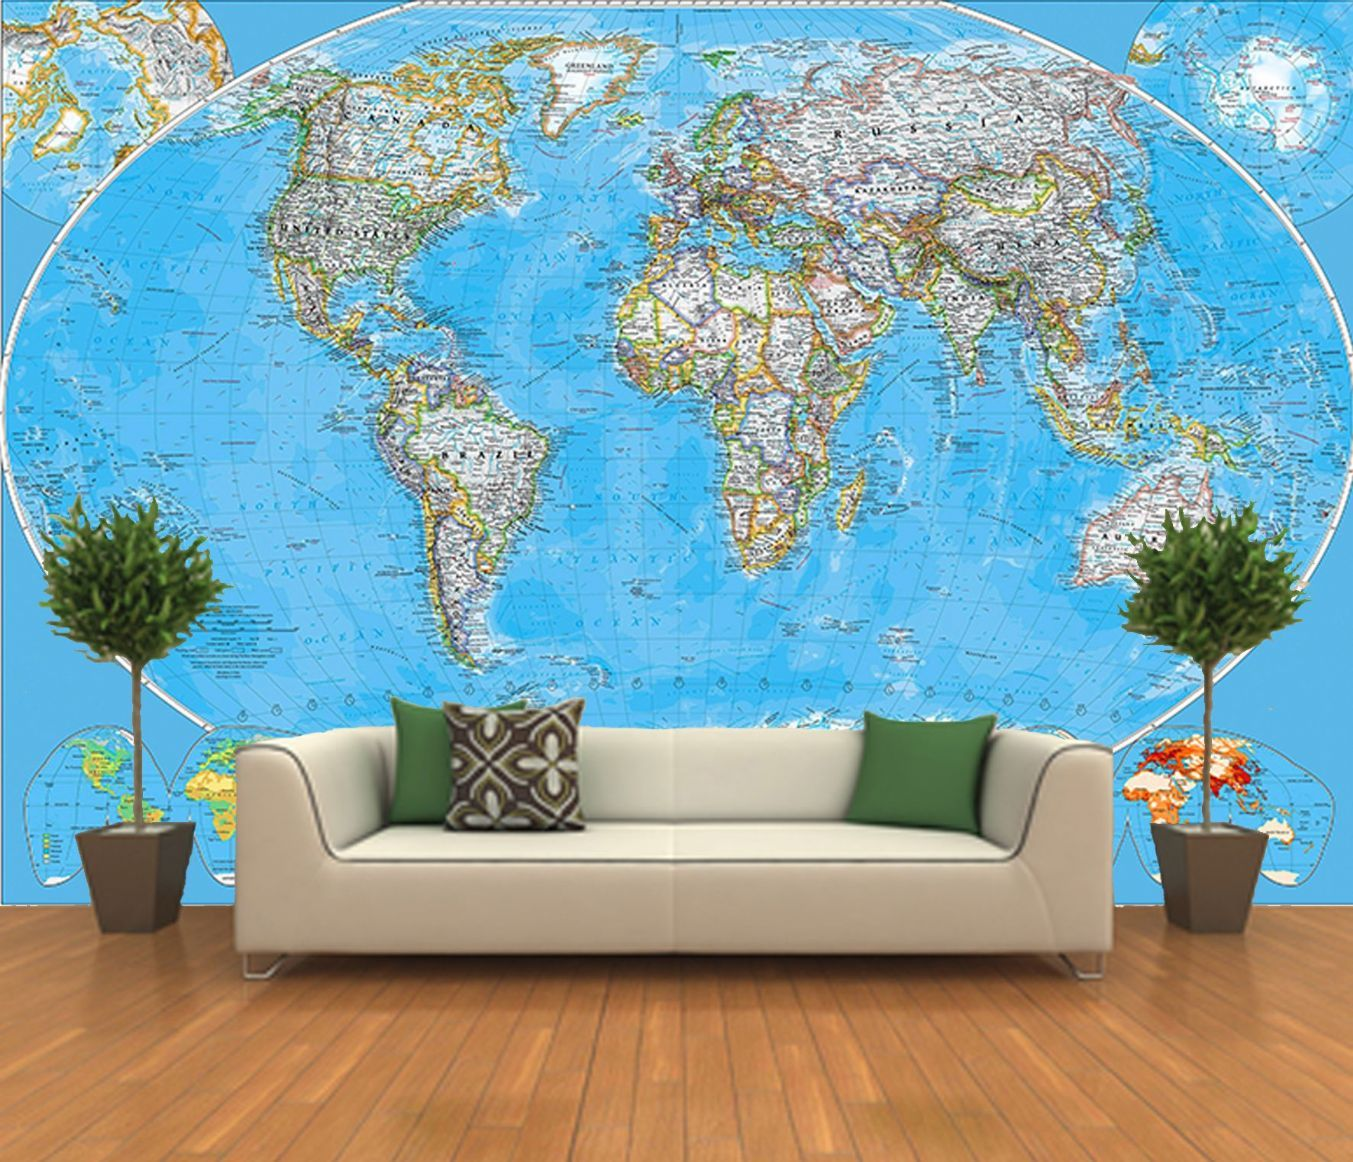 World map wall mural ft in x ft in mural wallpaper hd wallpapers world map wall mural ft in x ft in mural wallpaper gumiabroncs Choice Image